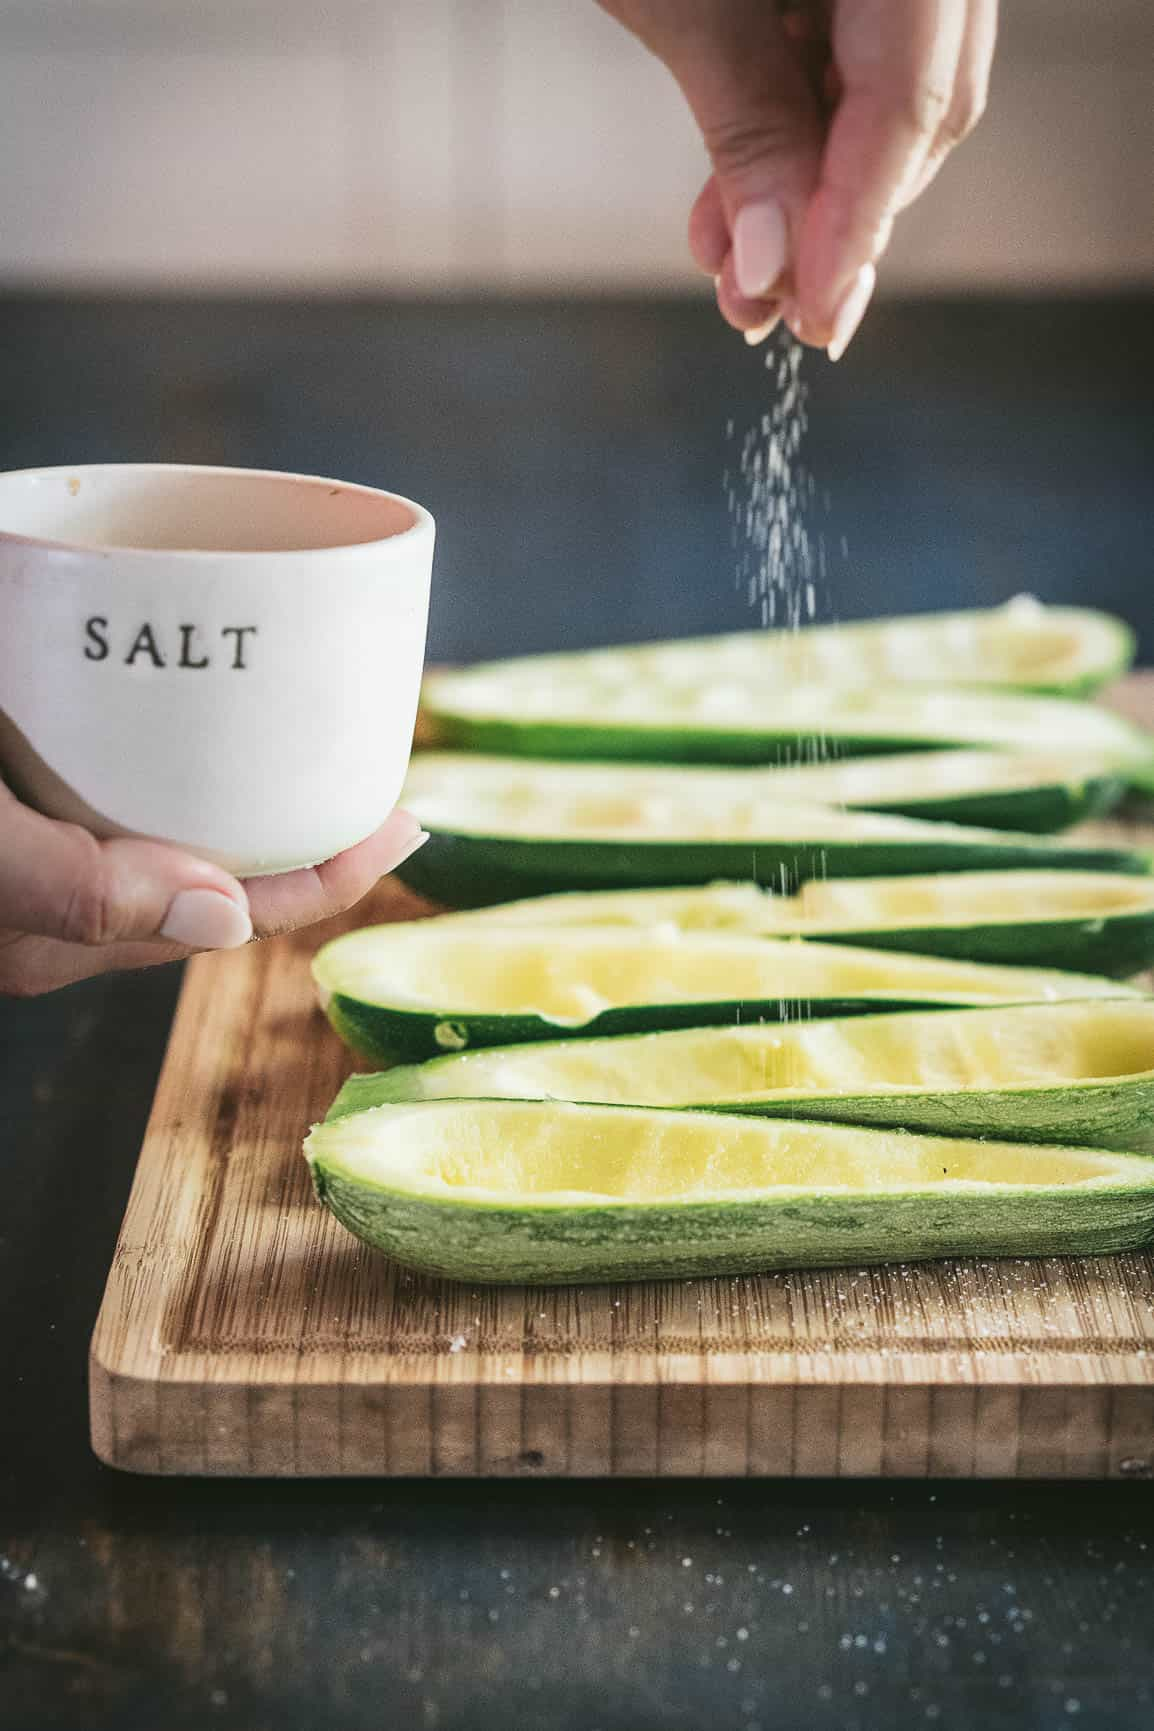 zucchini halves with the seeds scooped out to make boats on a wooden cutting board with a hand above sprinkling sea salt.